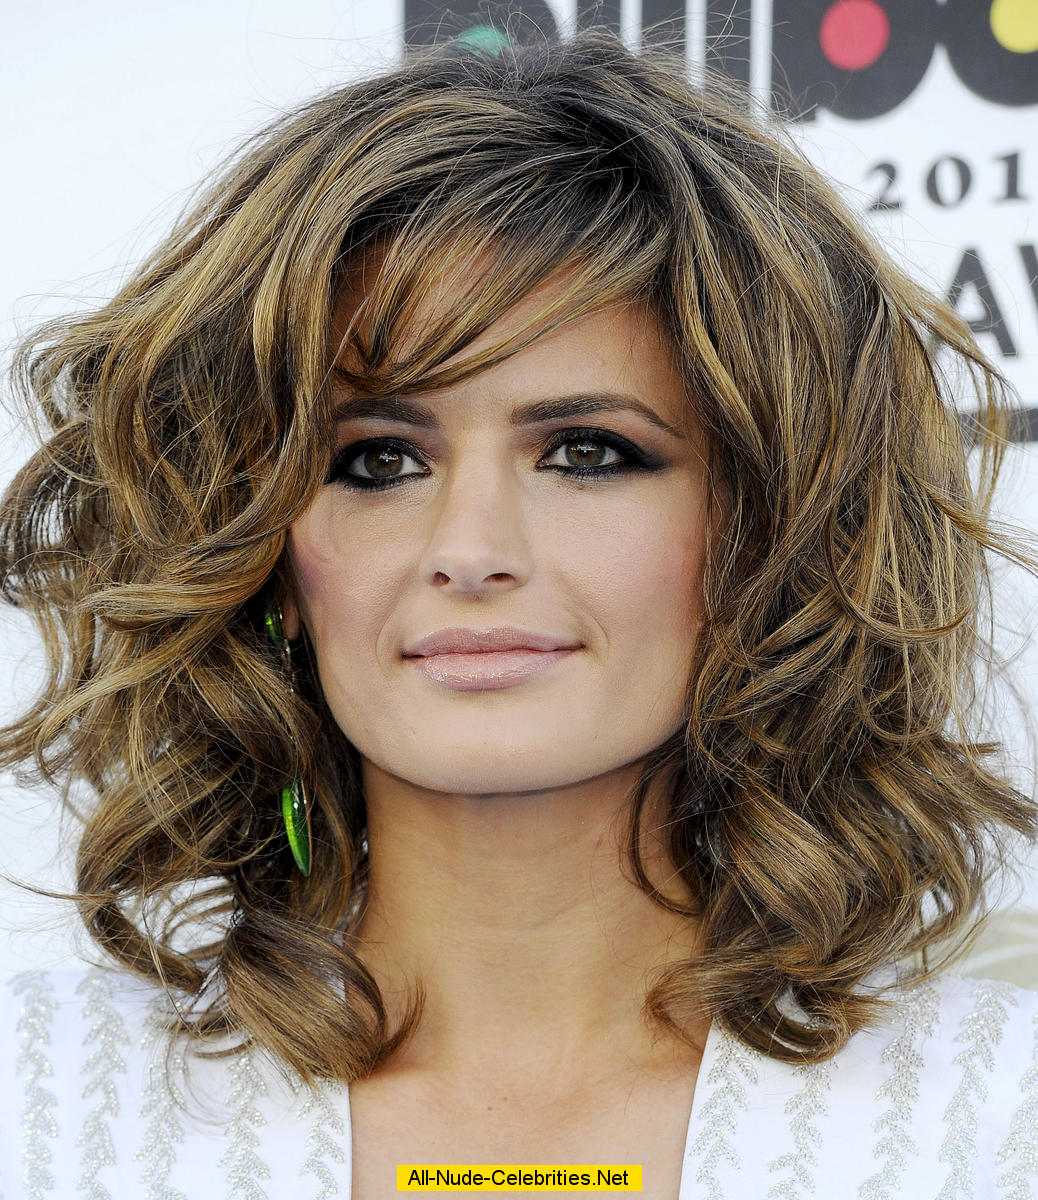 Lo Stana Katic Nude Pictures Castle Press